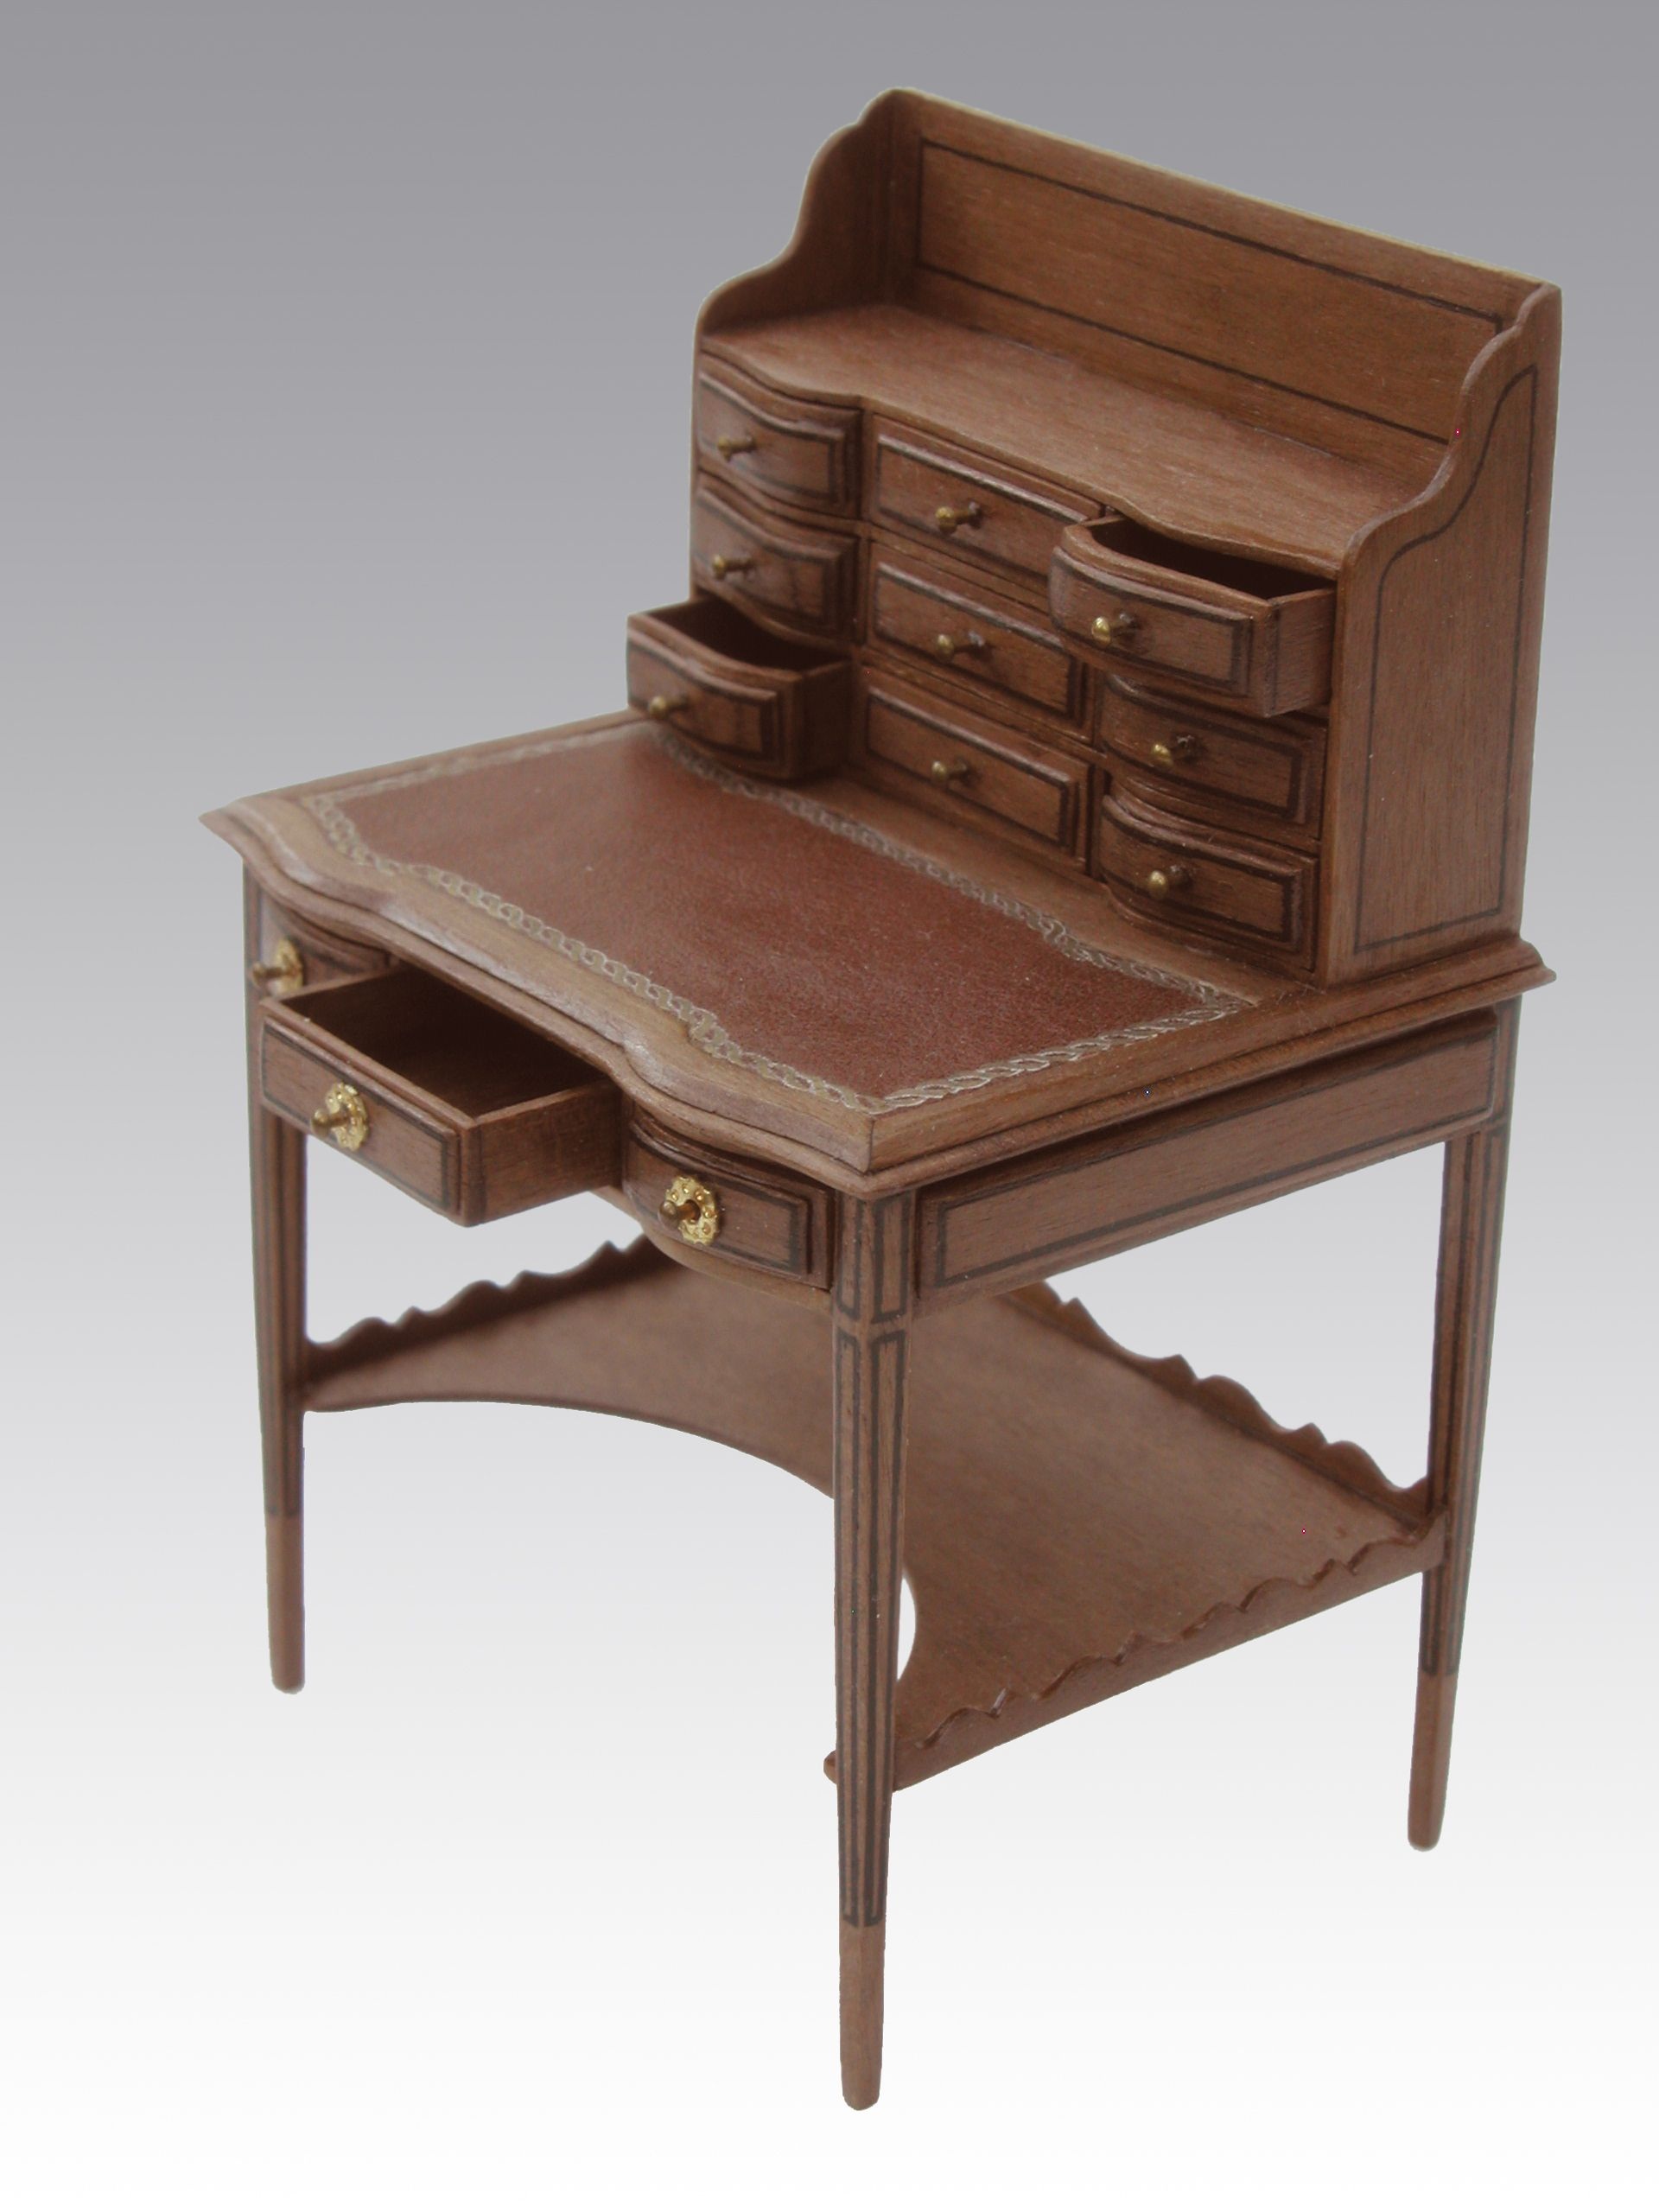 Writing Desk By Silvia Nagore Spain Www Silvianagore Es